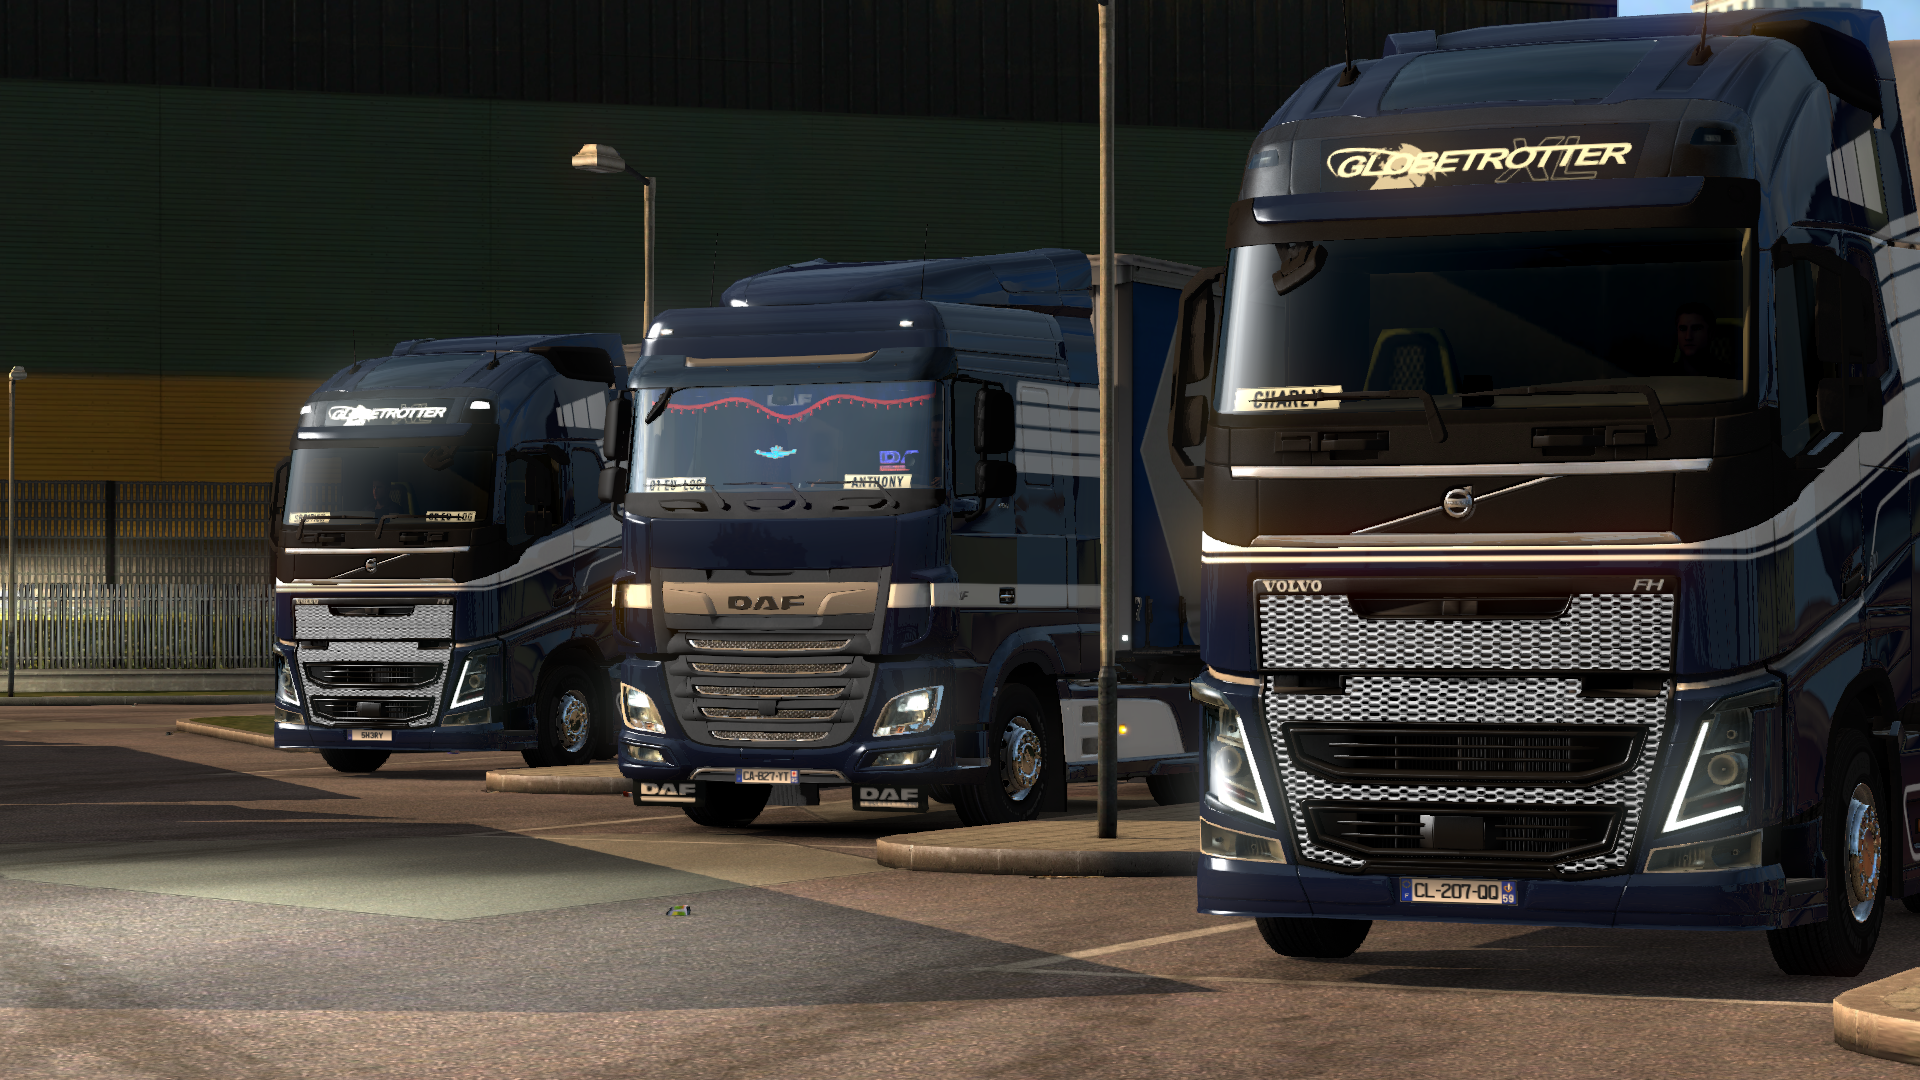 ets2_20180826_202821_00.png